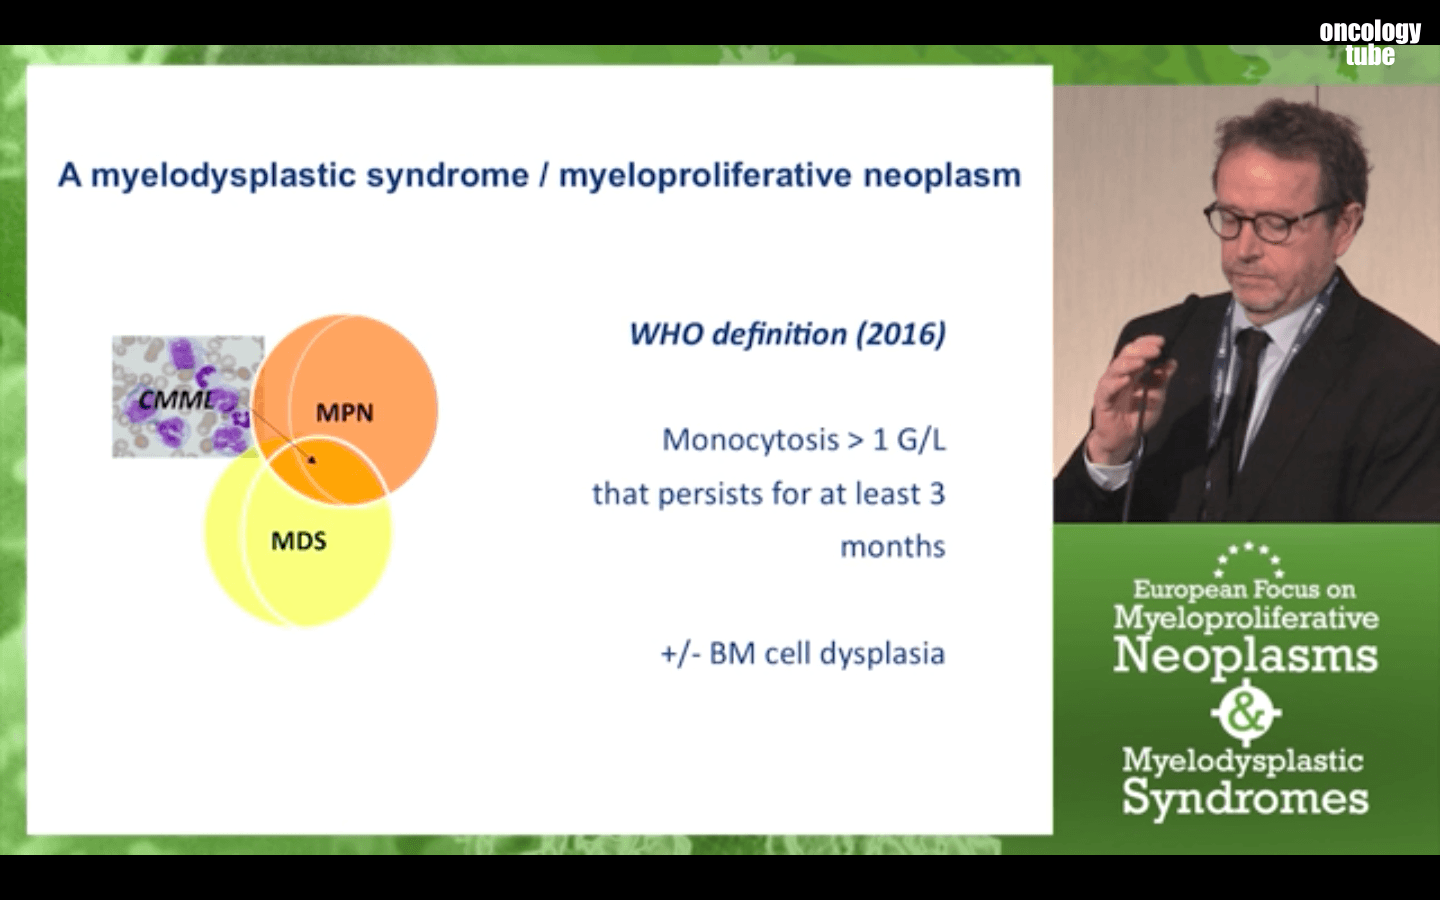 Video: Chronic myelomonocytic leukaemia CMML